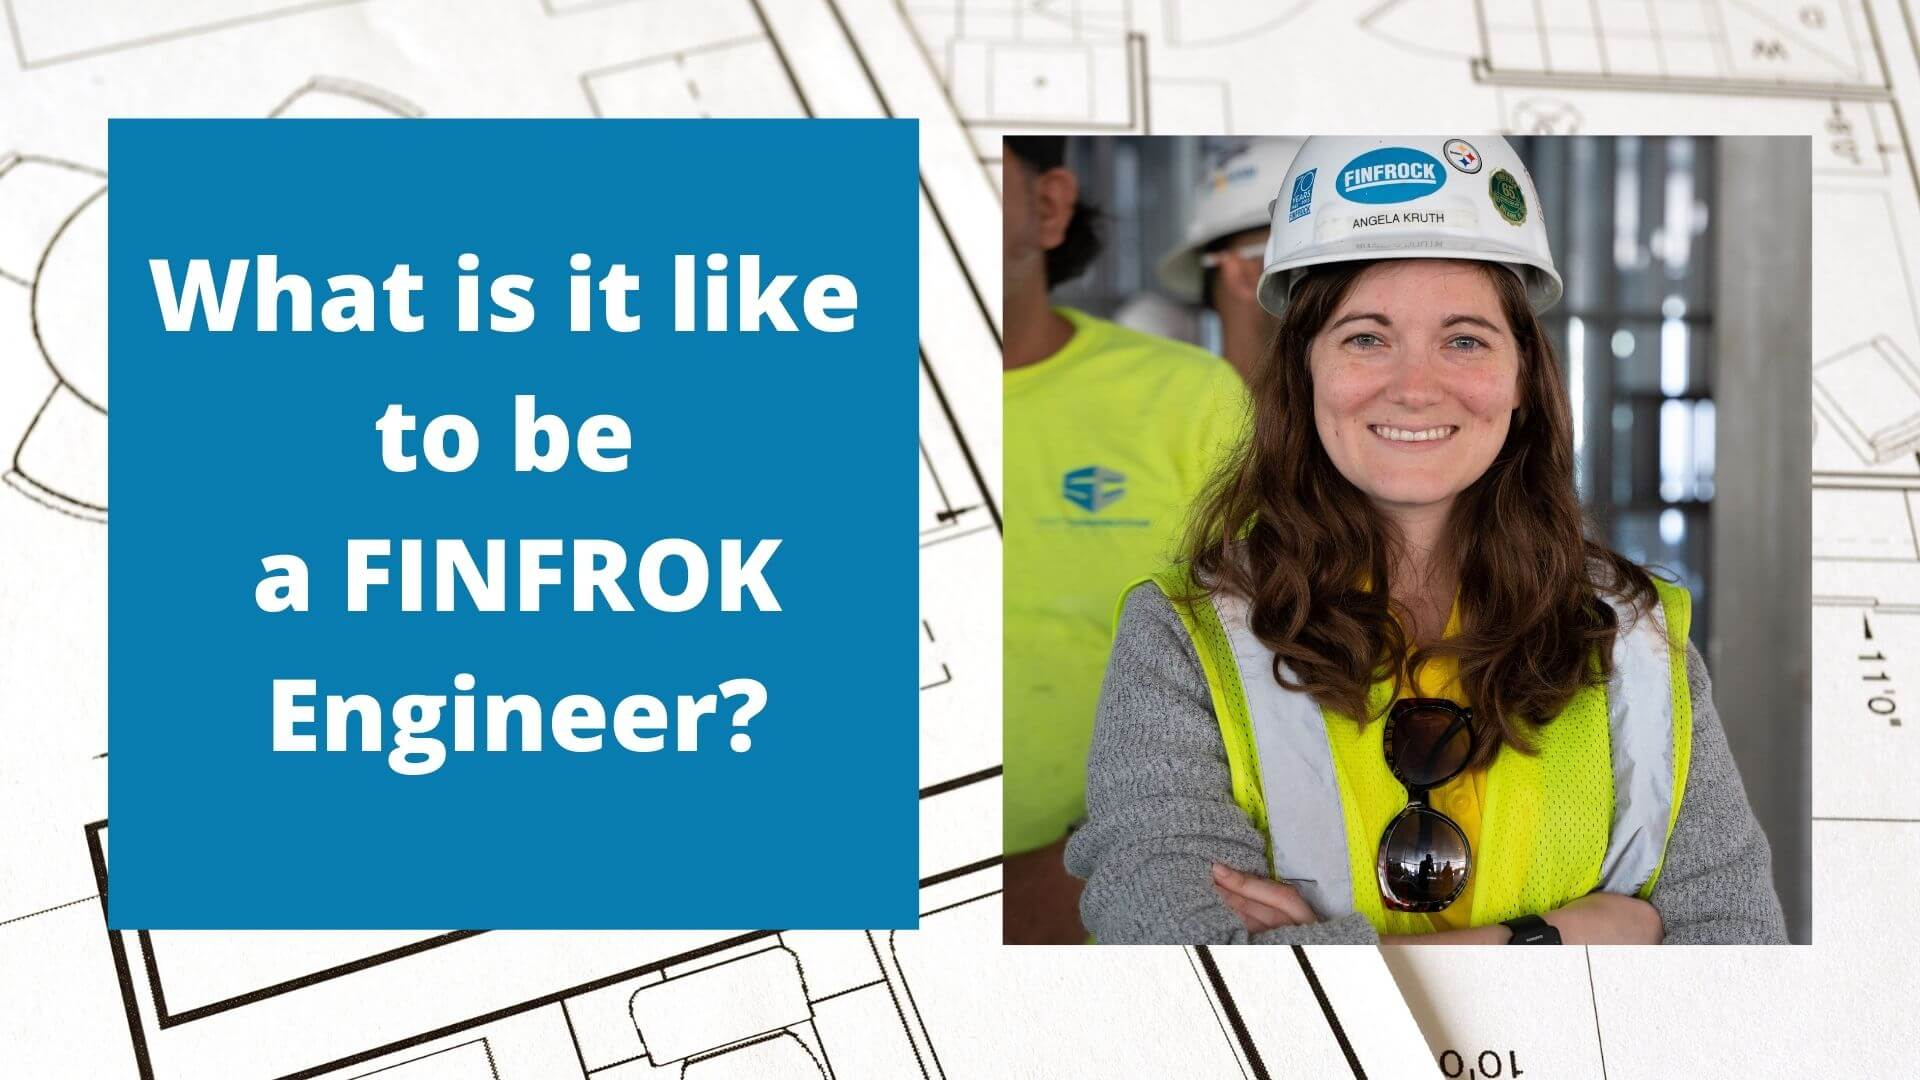 What is it like to be an Engineer_ An interview with Angela Kruth, P.E. of FINFROCK